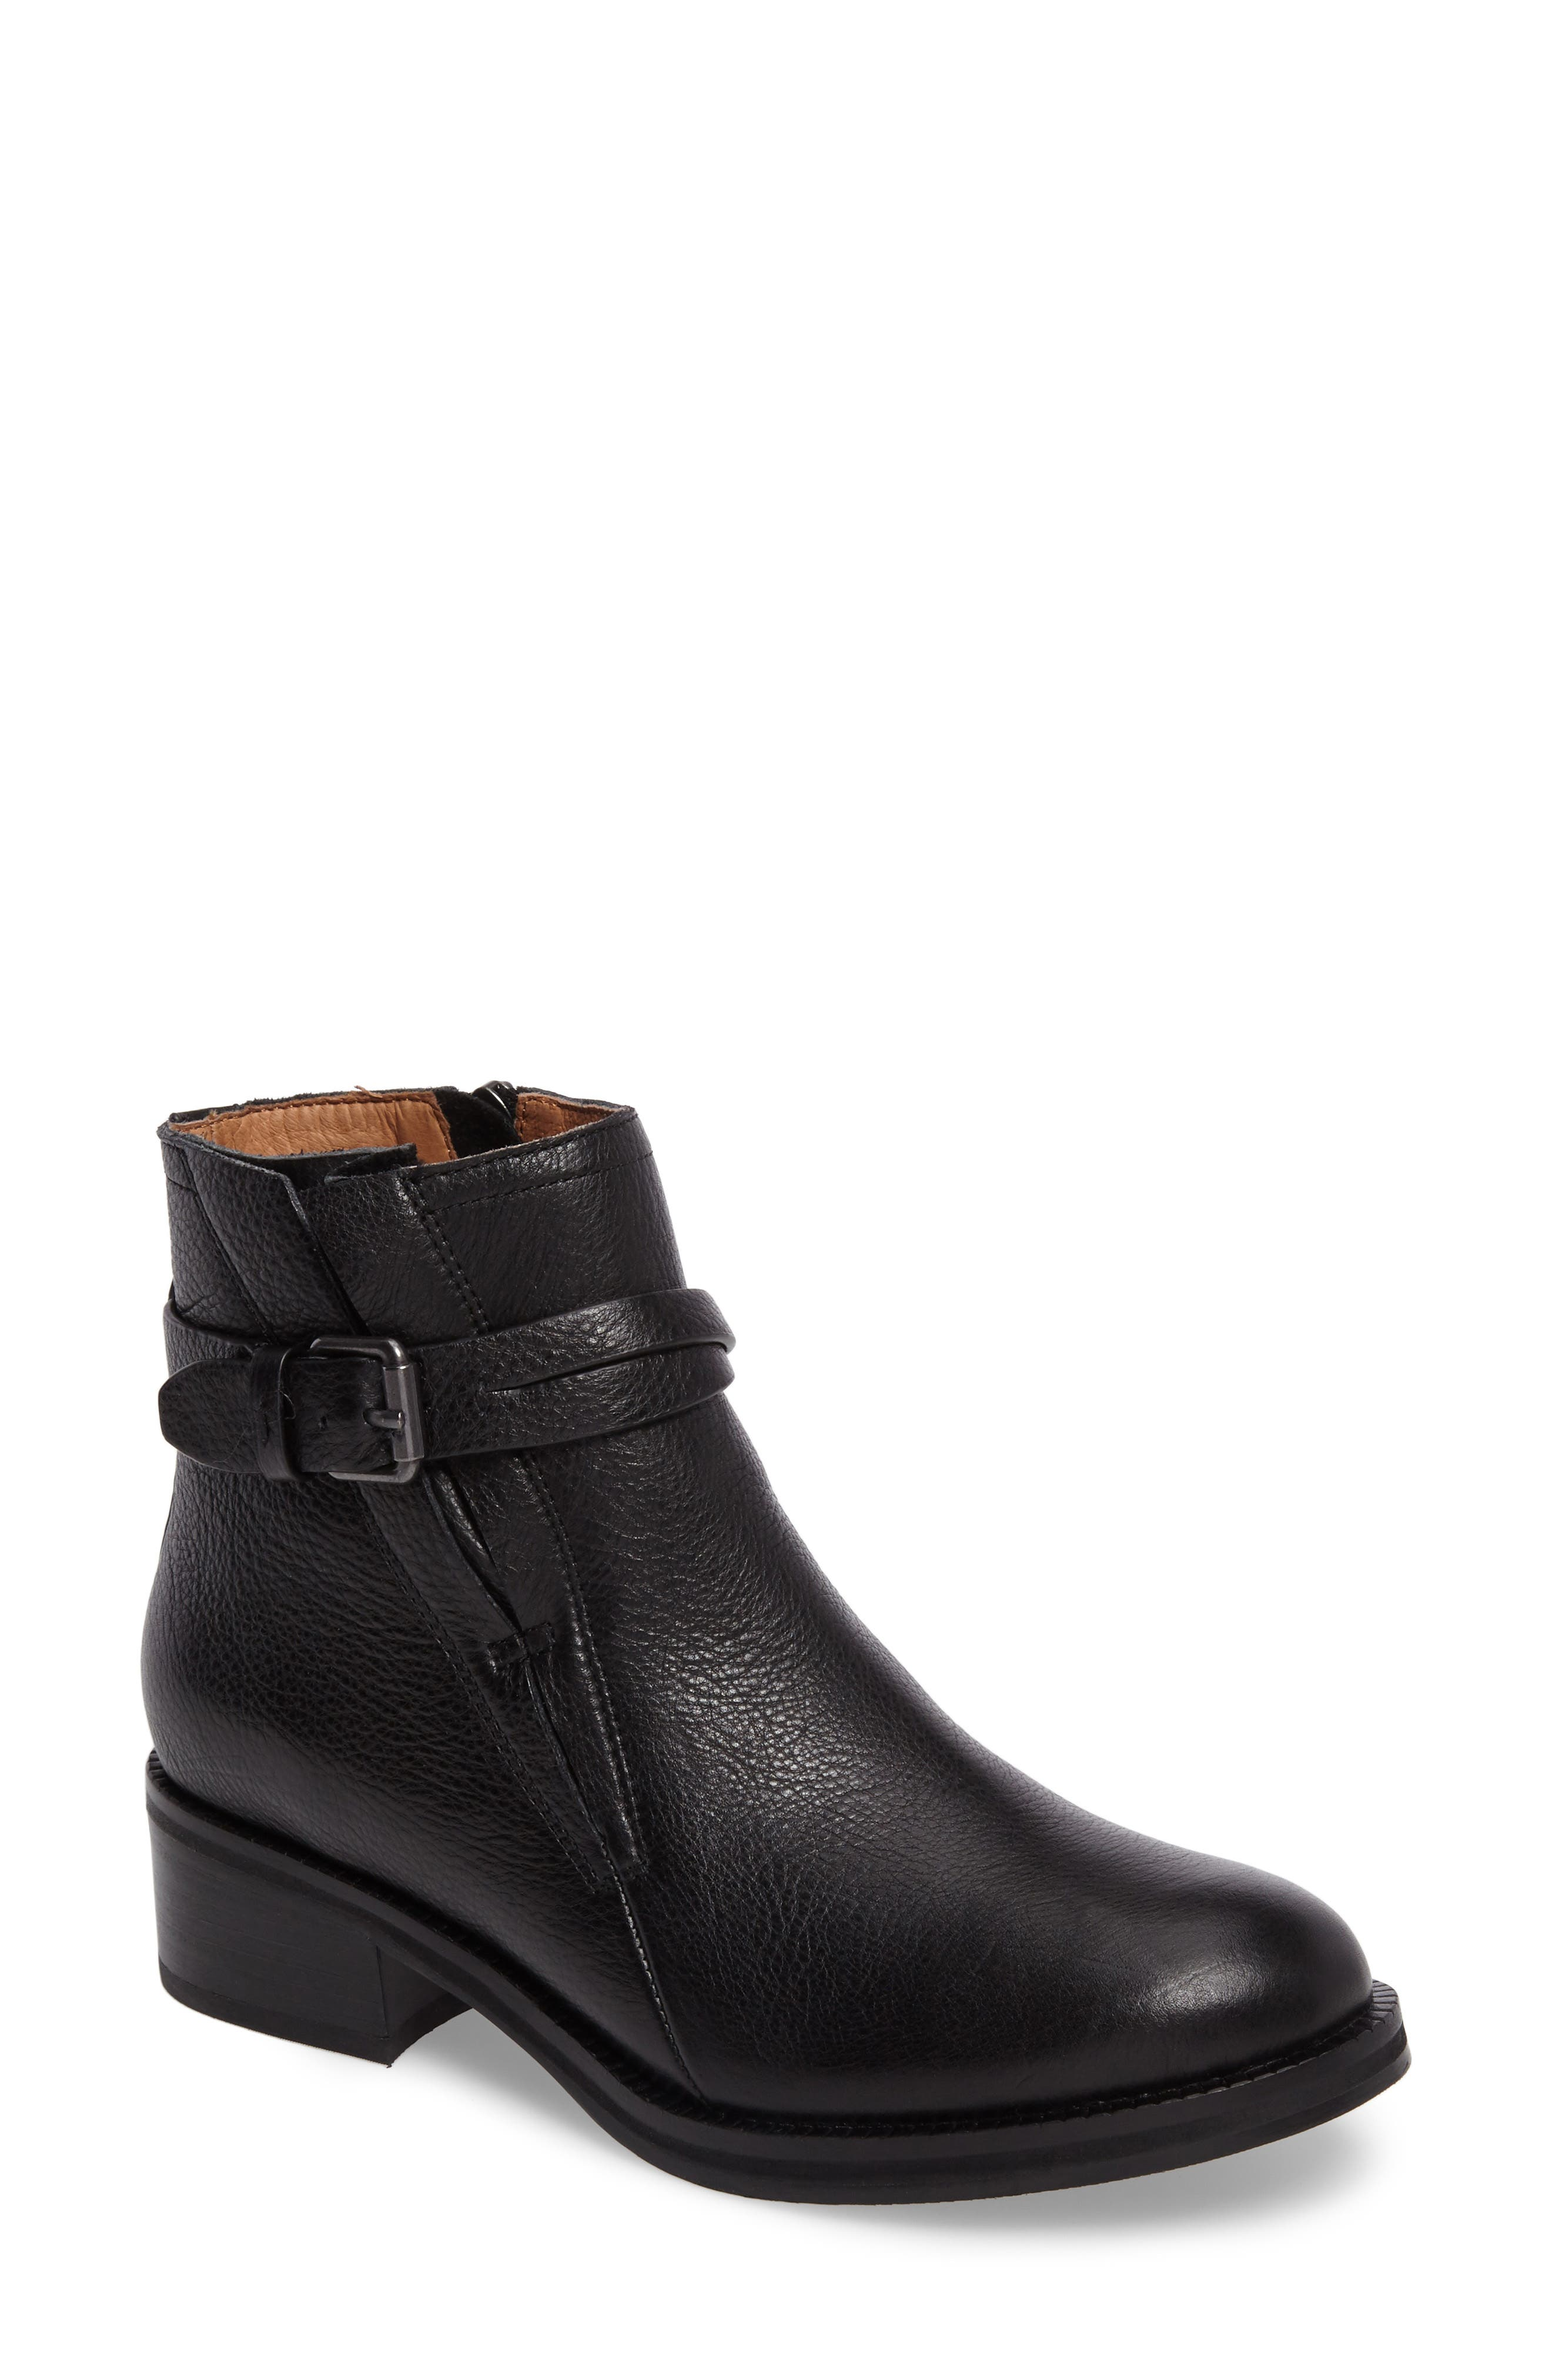 GENTLE SOULS BY KENNETH COLE Percy Bootie, Main, color, BLACK LEATHER